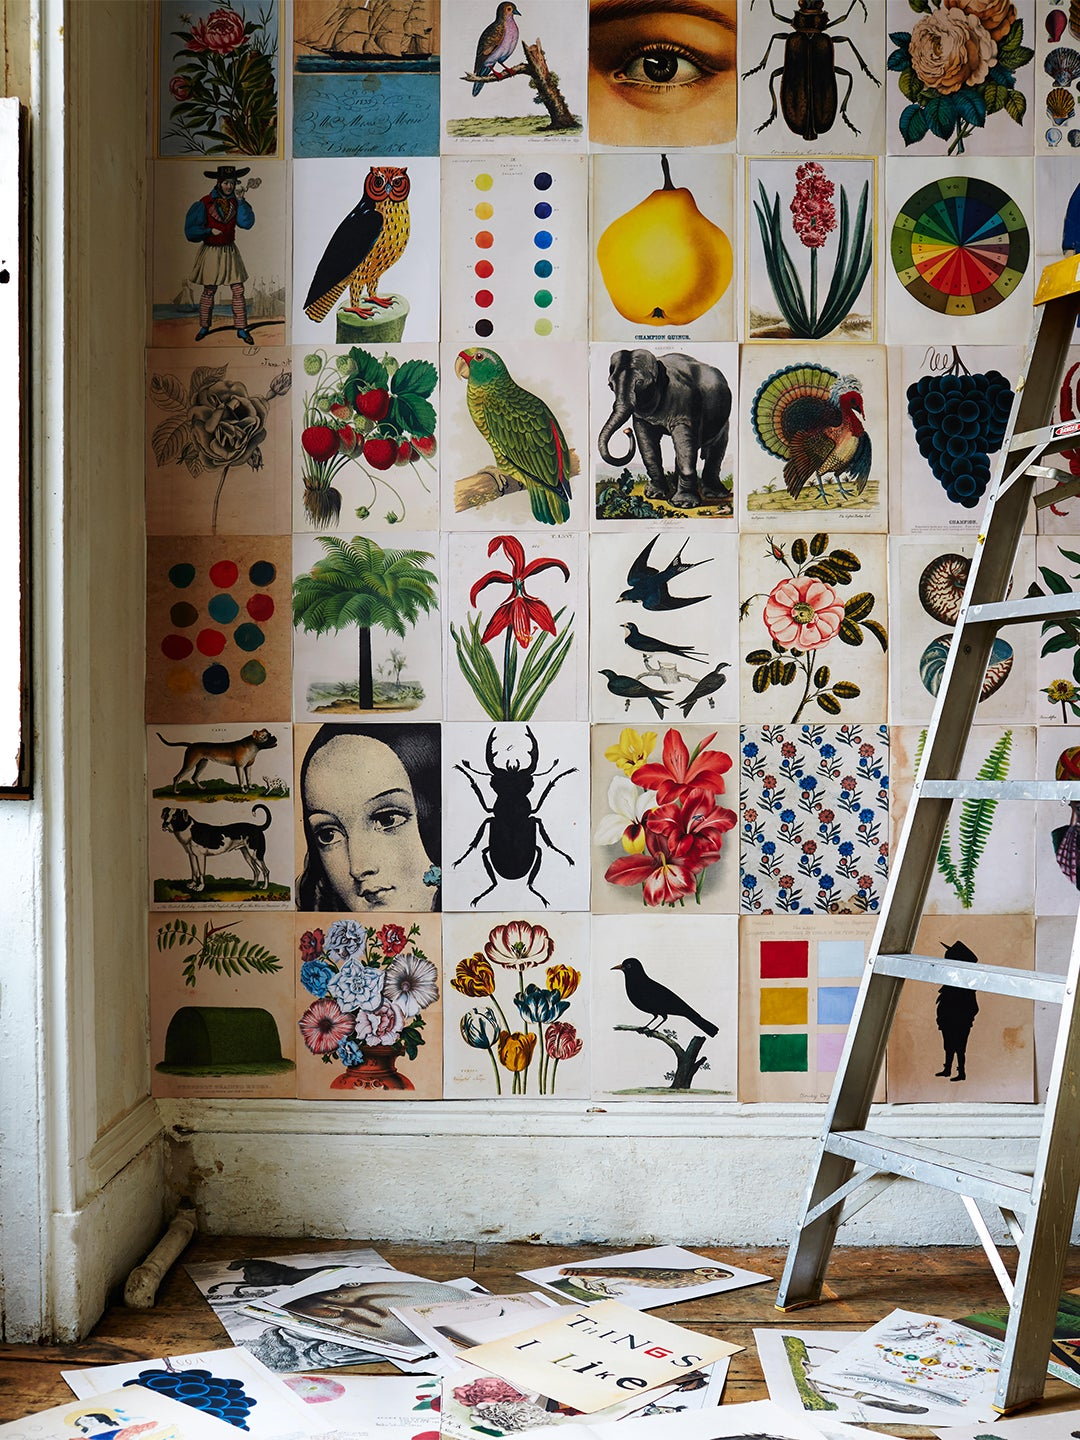 John derian book pages on wall